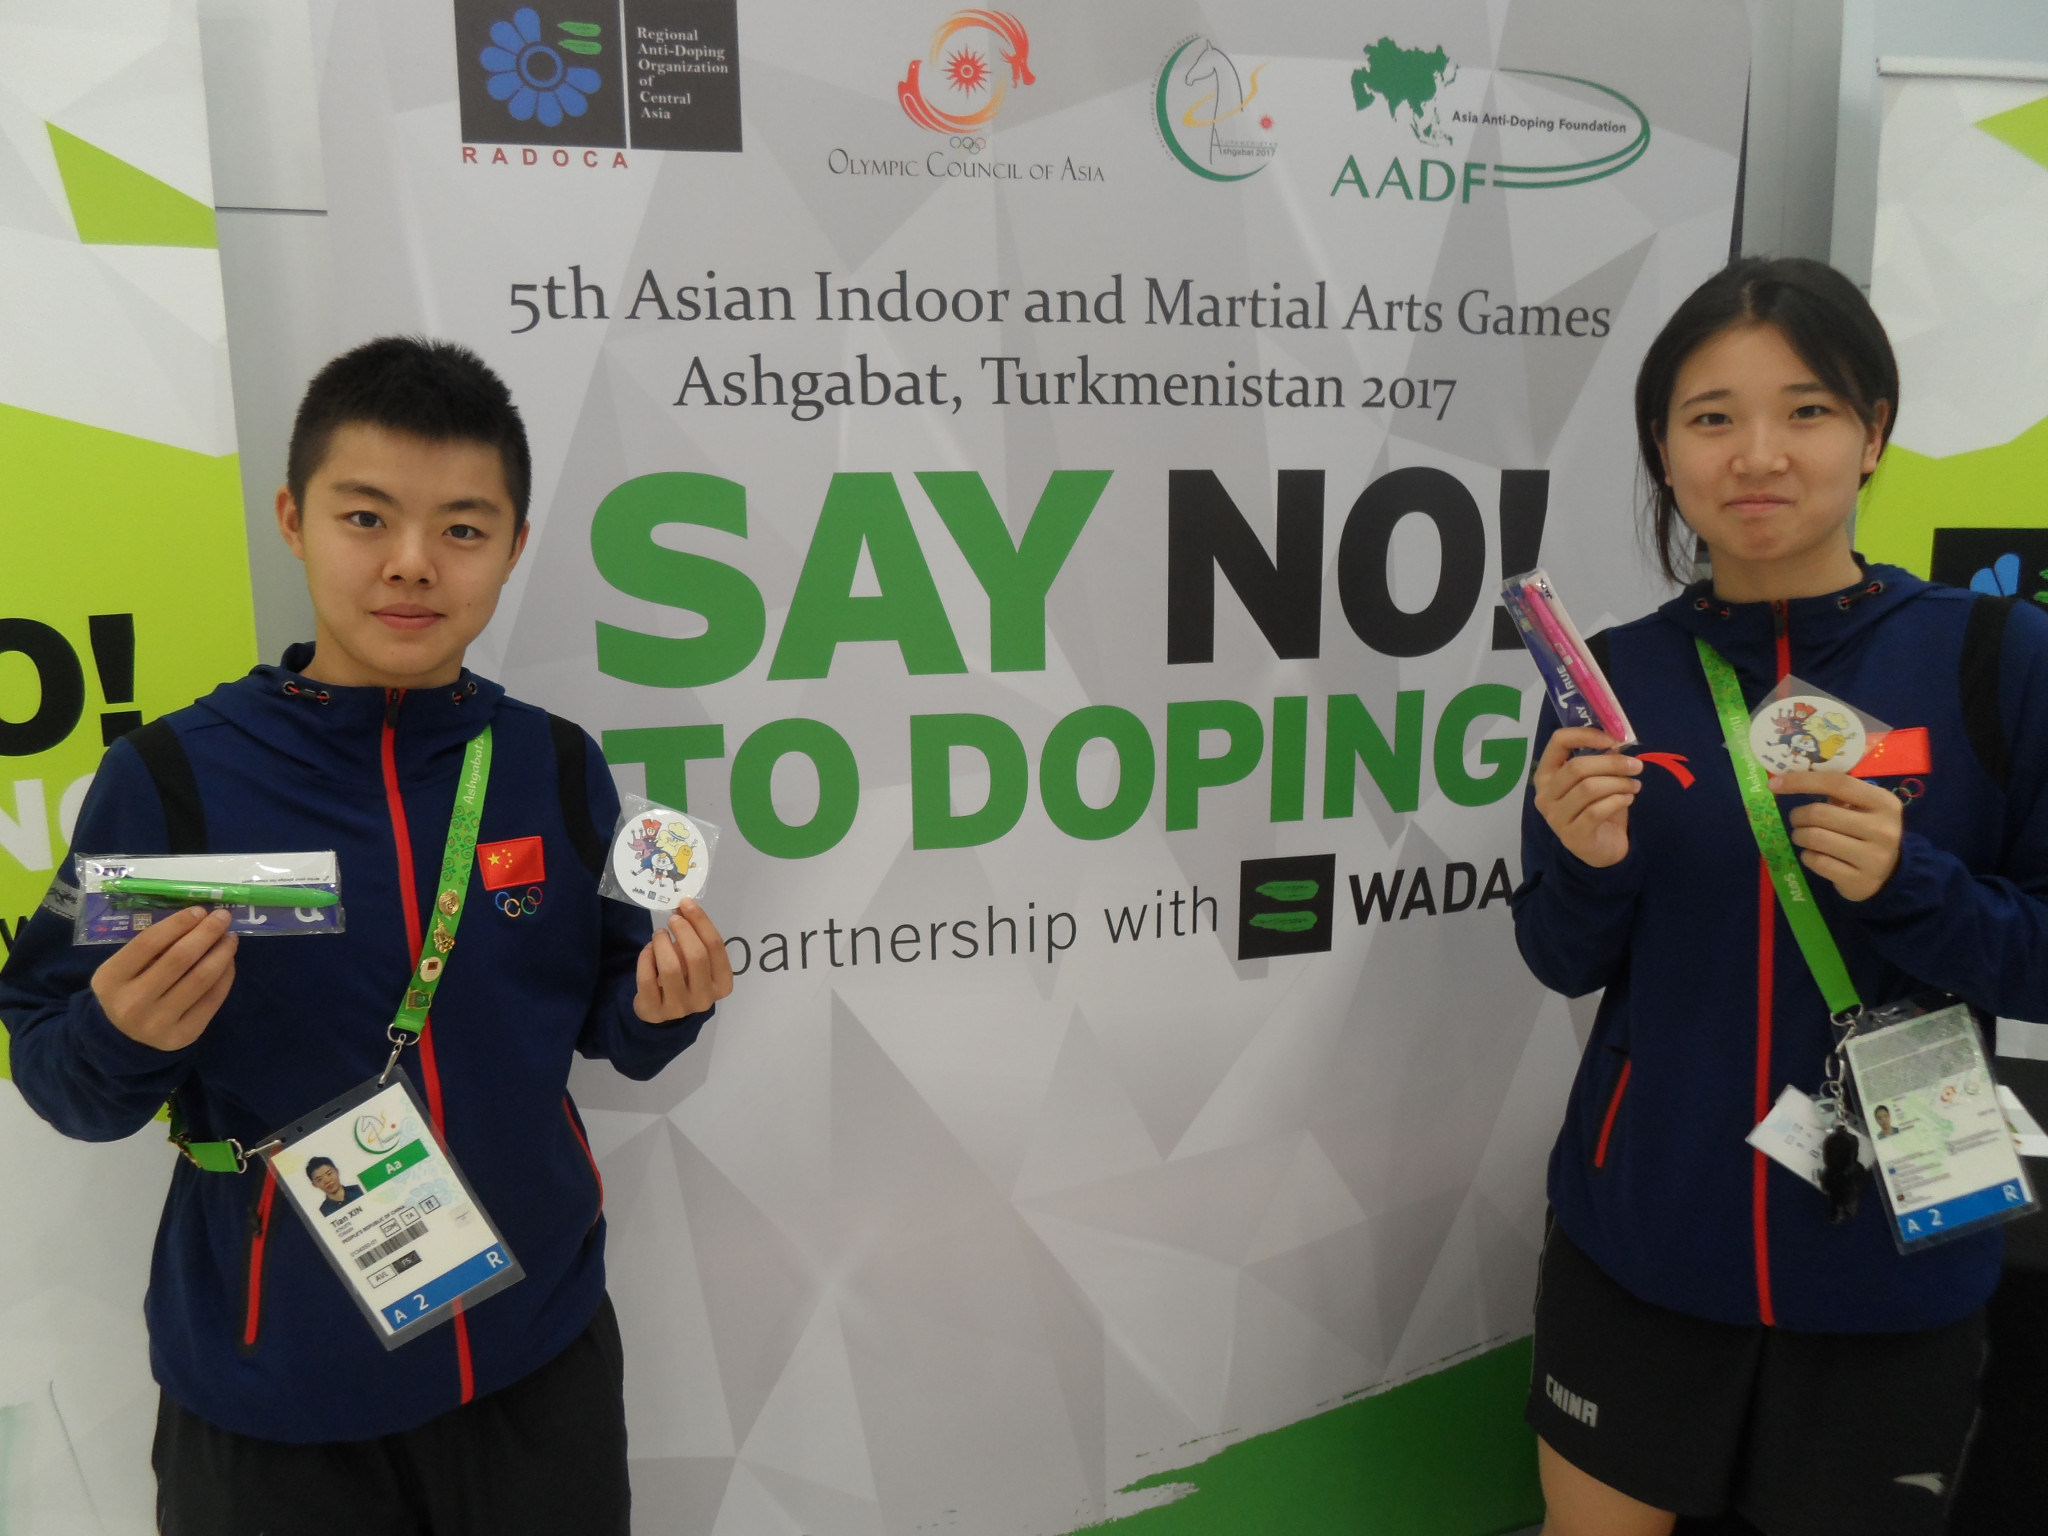 Ashgabat 2017 athletes given opportunity to learn about anti-doping at outreach kiosk